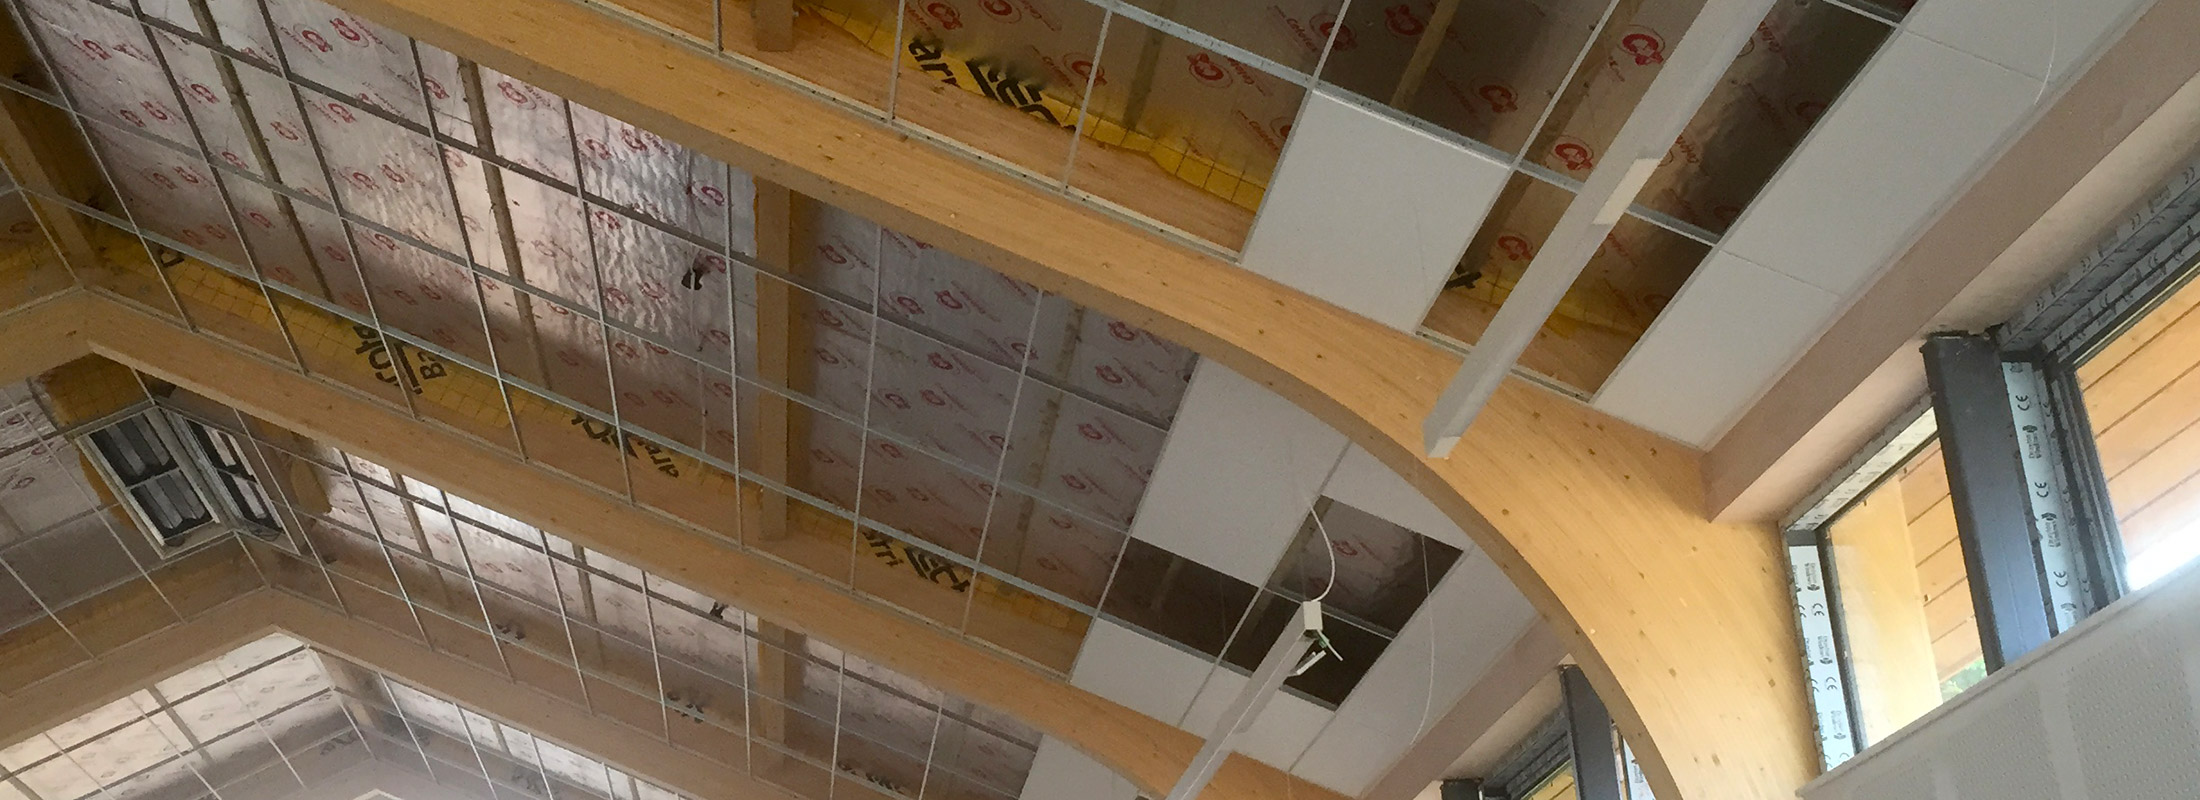 ASC | Suspended Ceilings-Installers-Commercial-Educational-Industrial-Suffolk